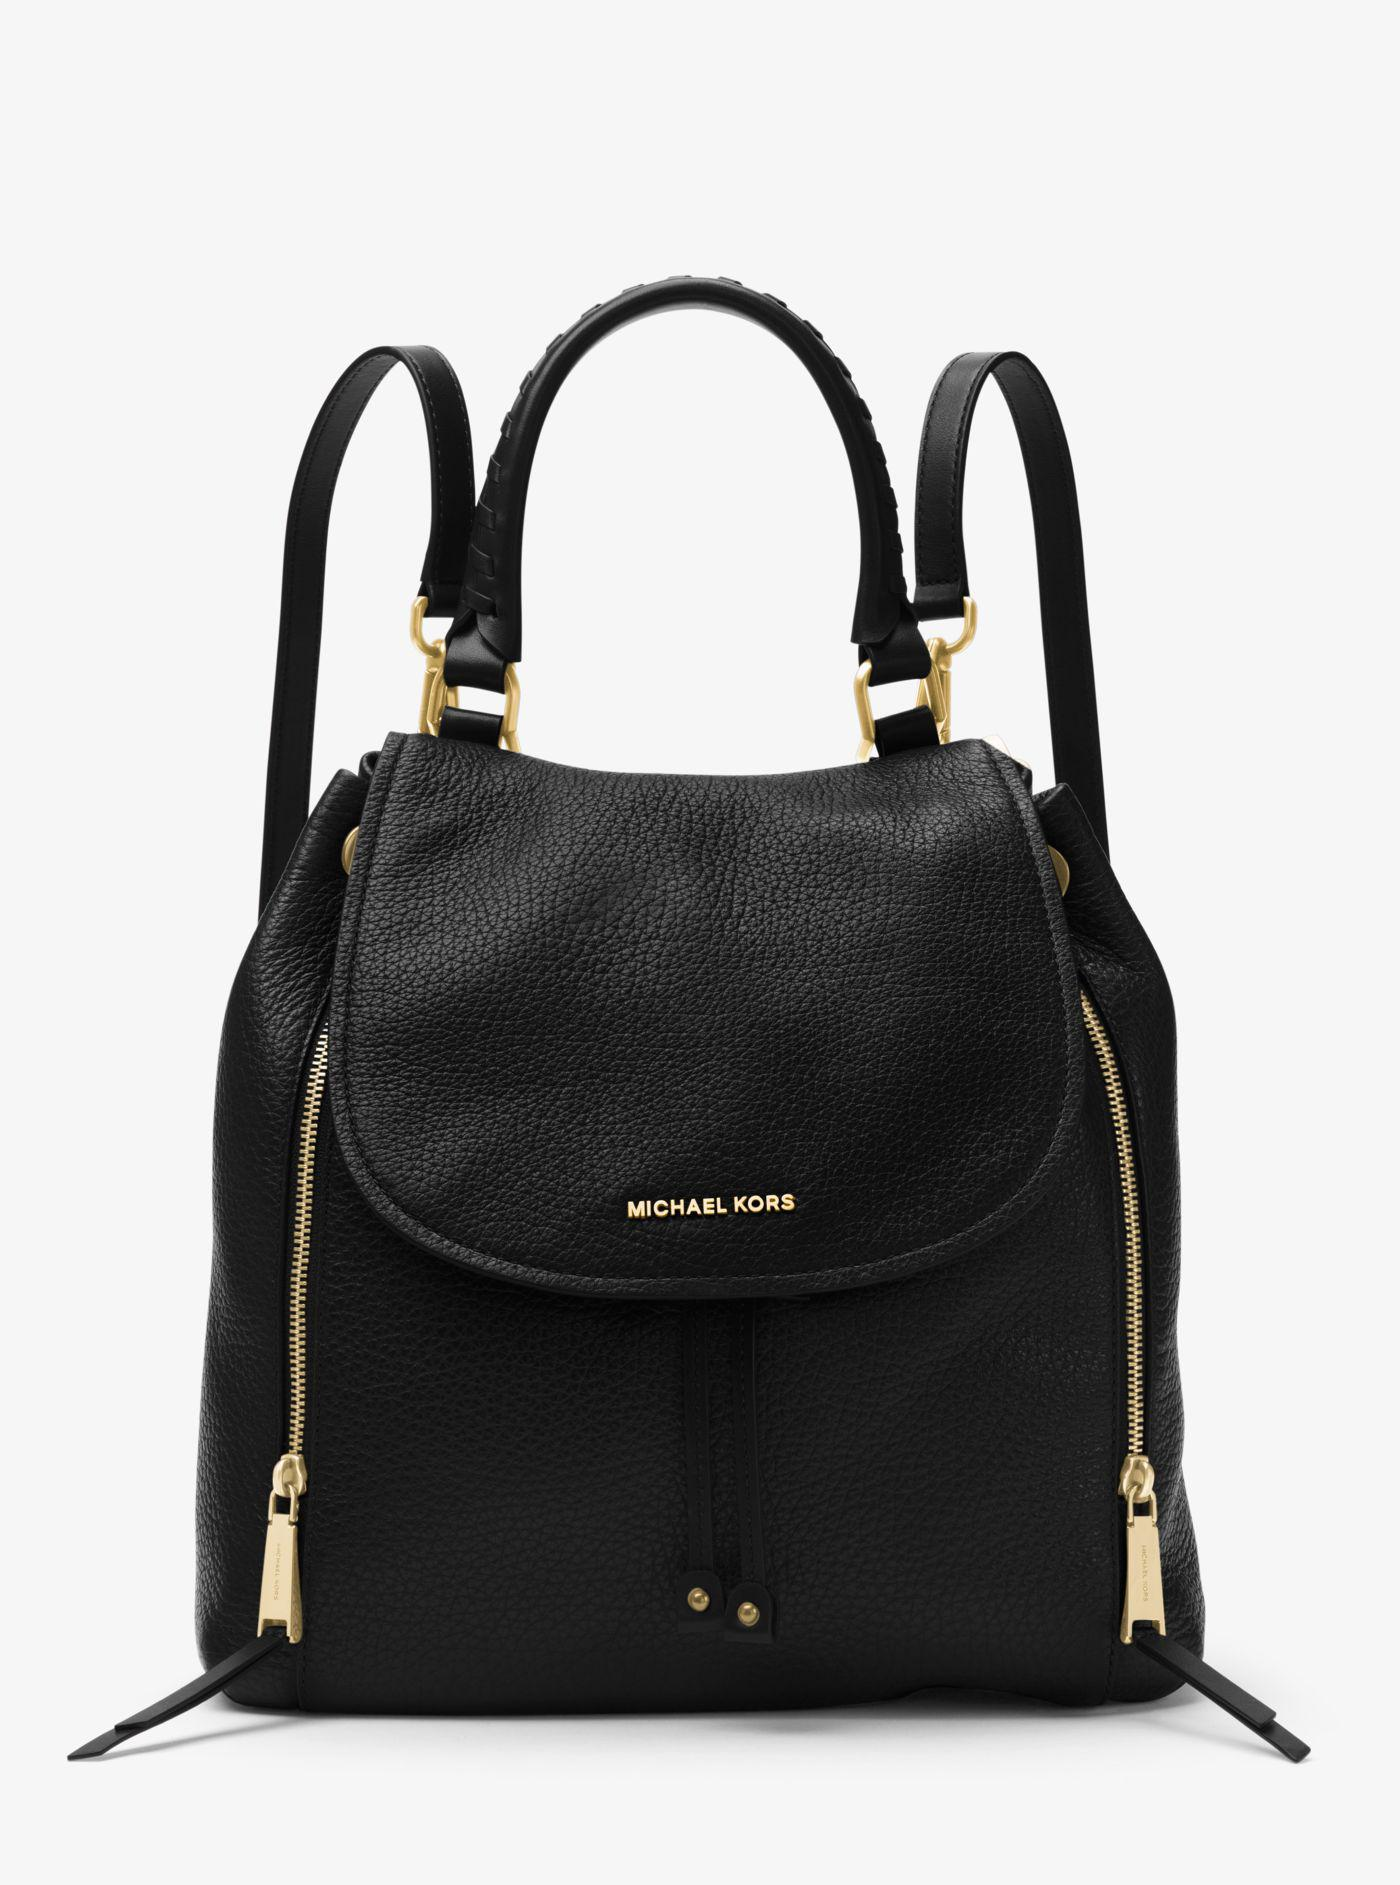 3b1761409c3ce5 ... discount michael kors black viv large leather backpack lyst. view  fullscreen e33ff 8ee6b